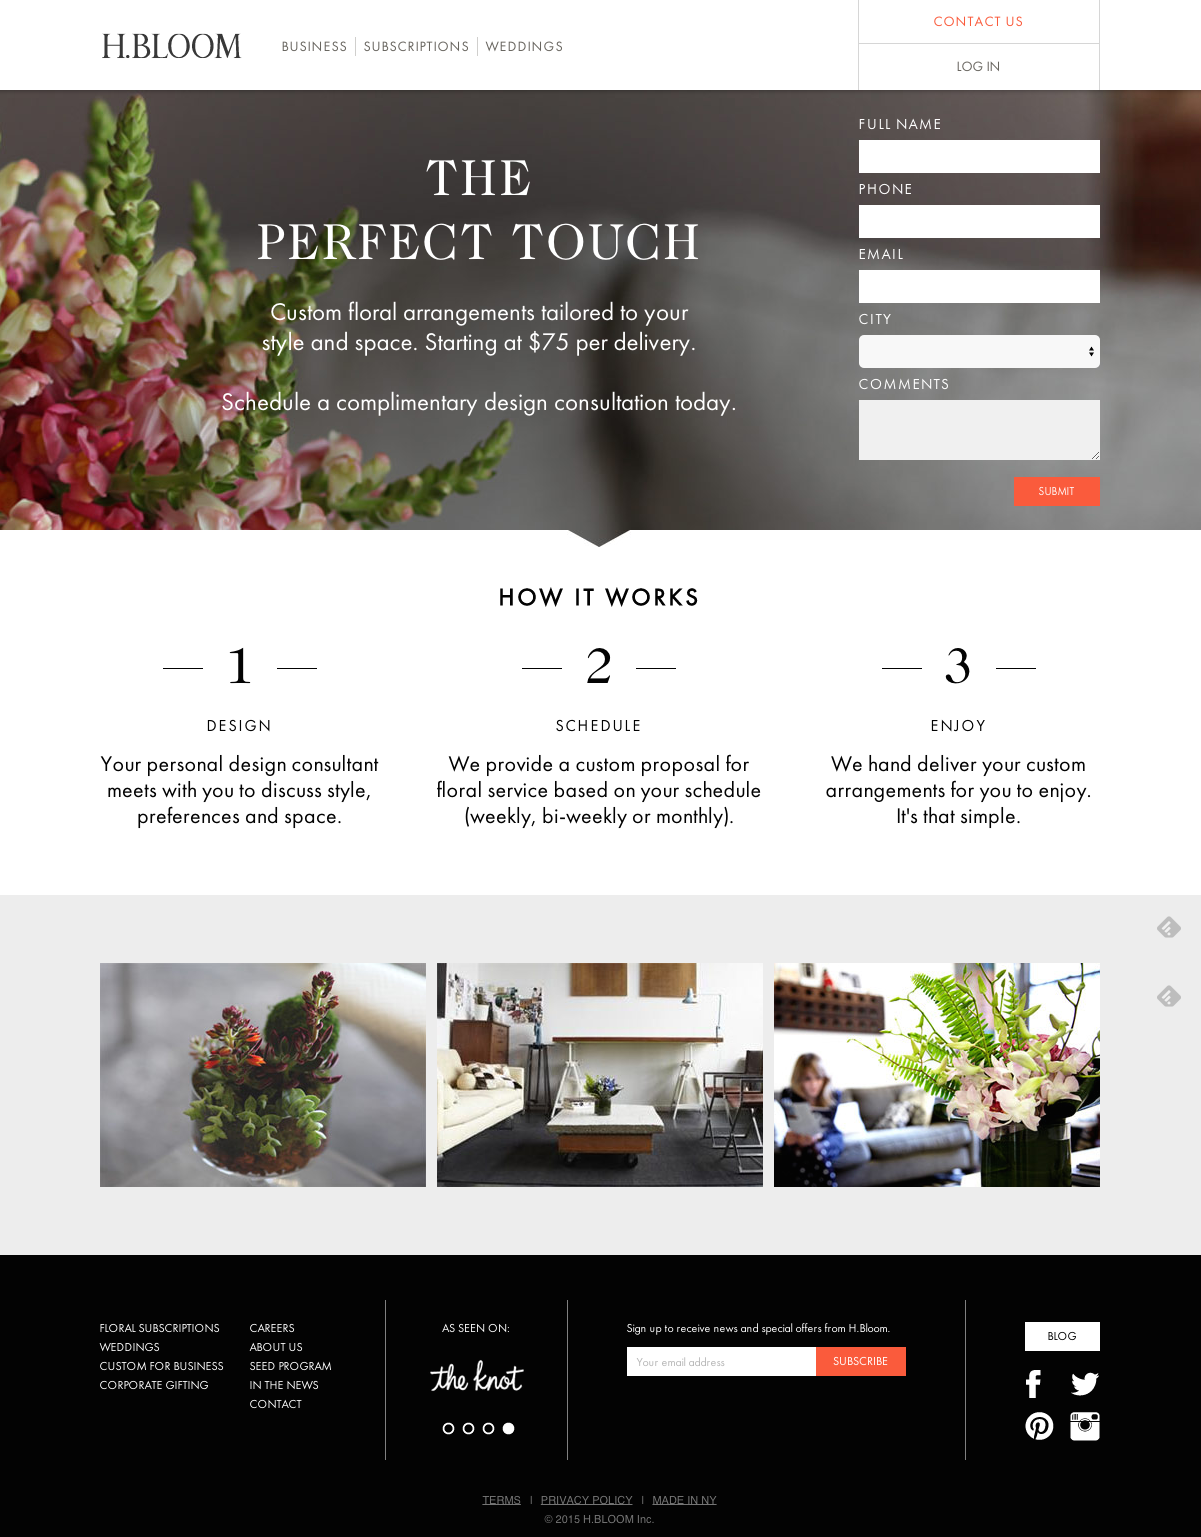 campagne con landing pages di successo: H-Bloom